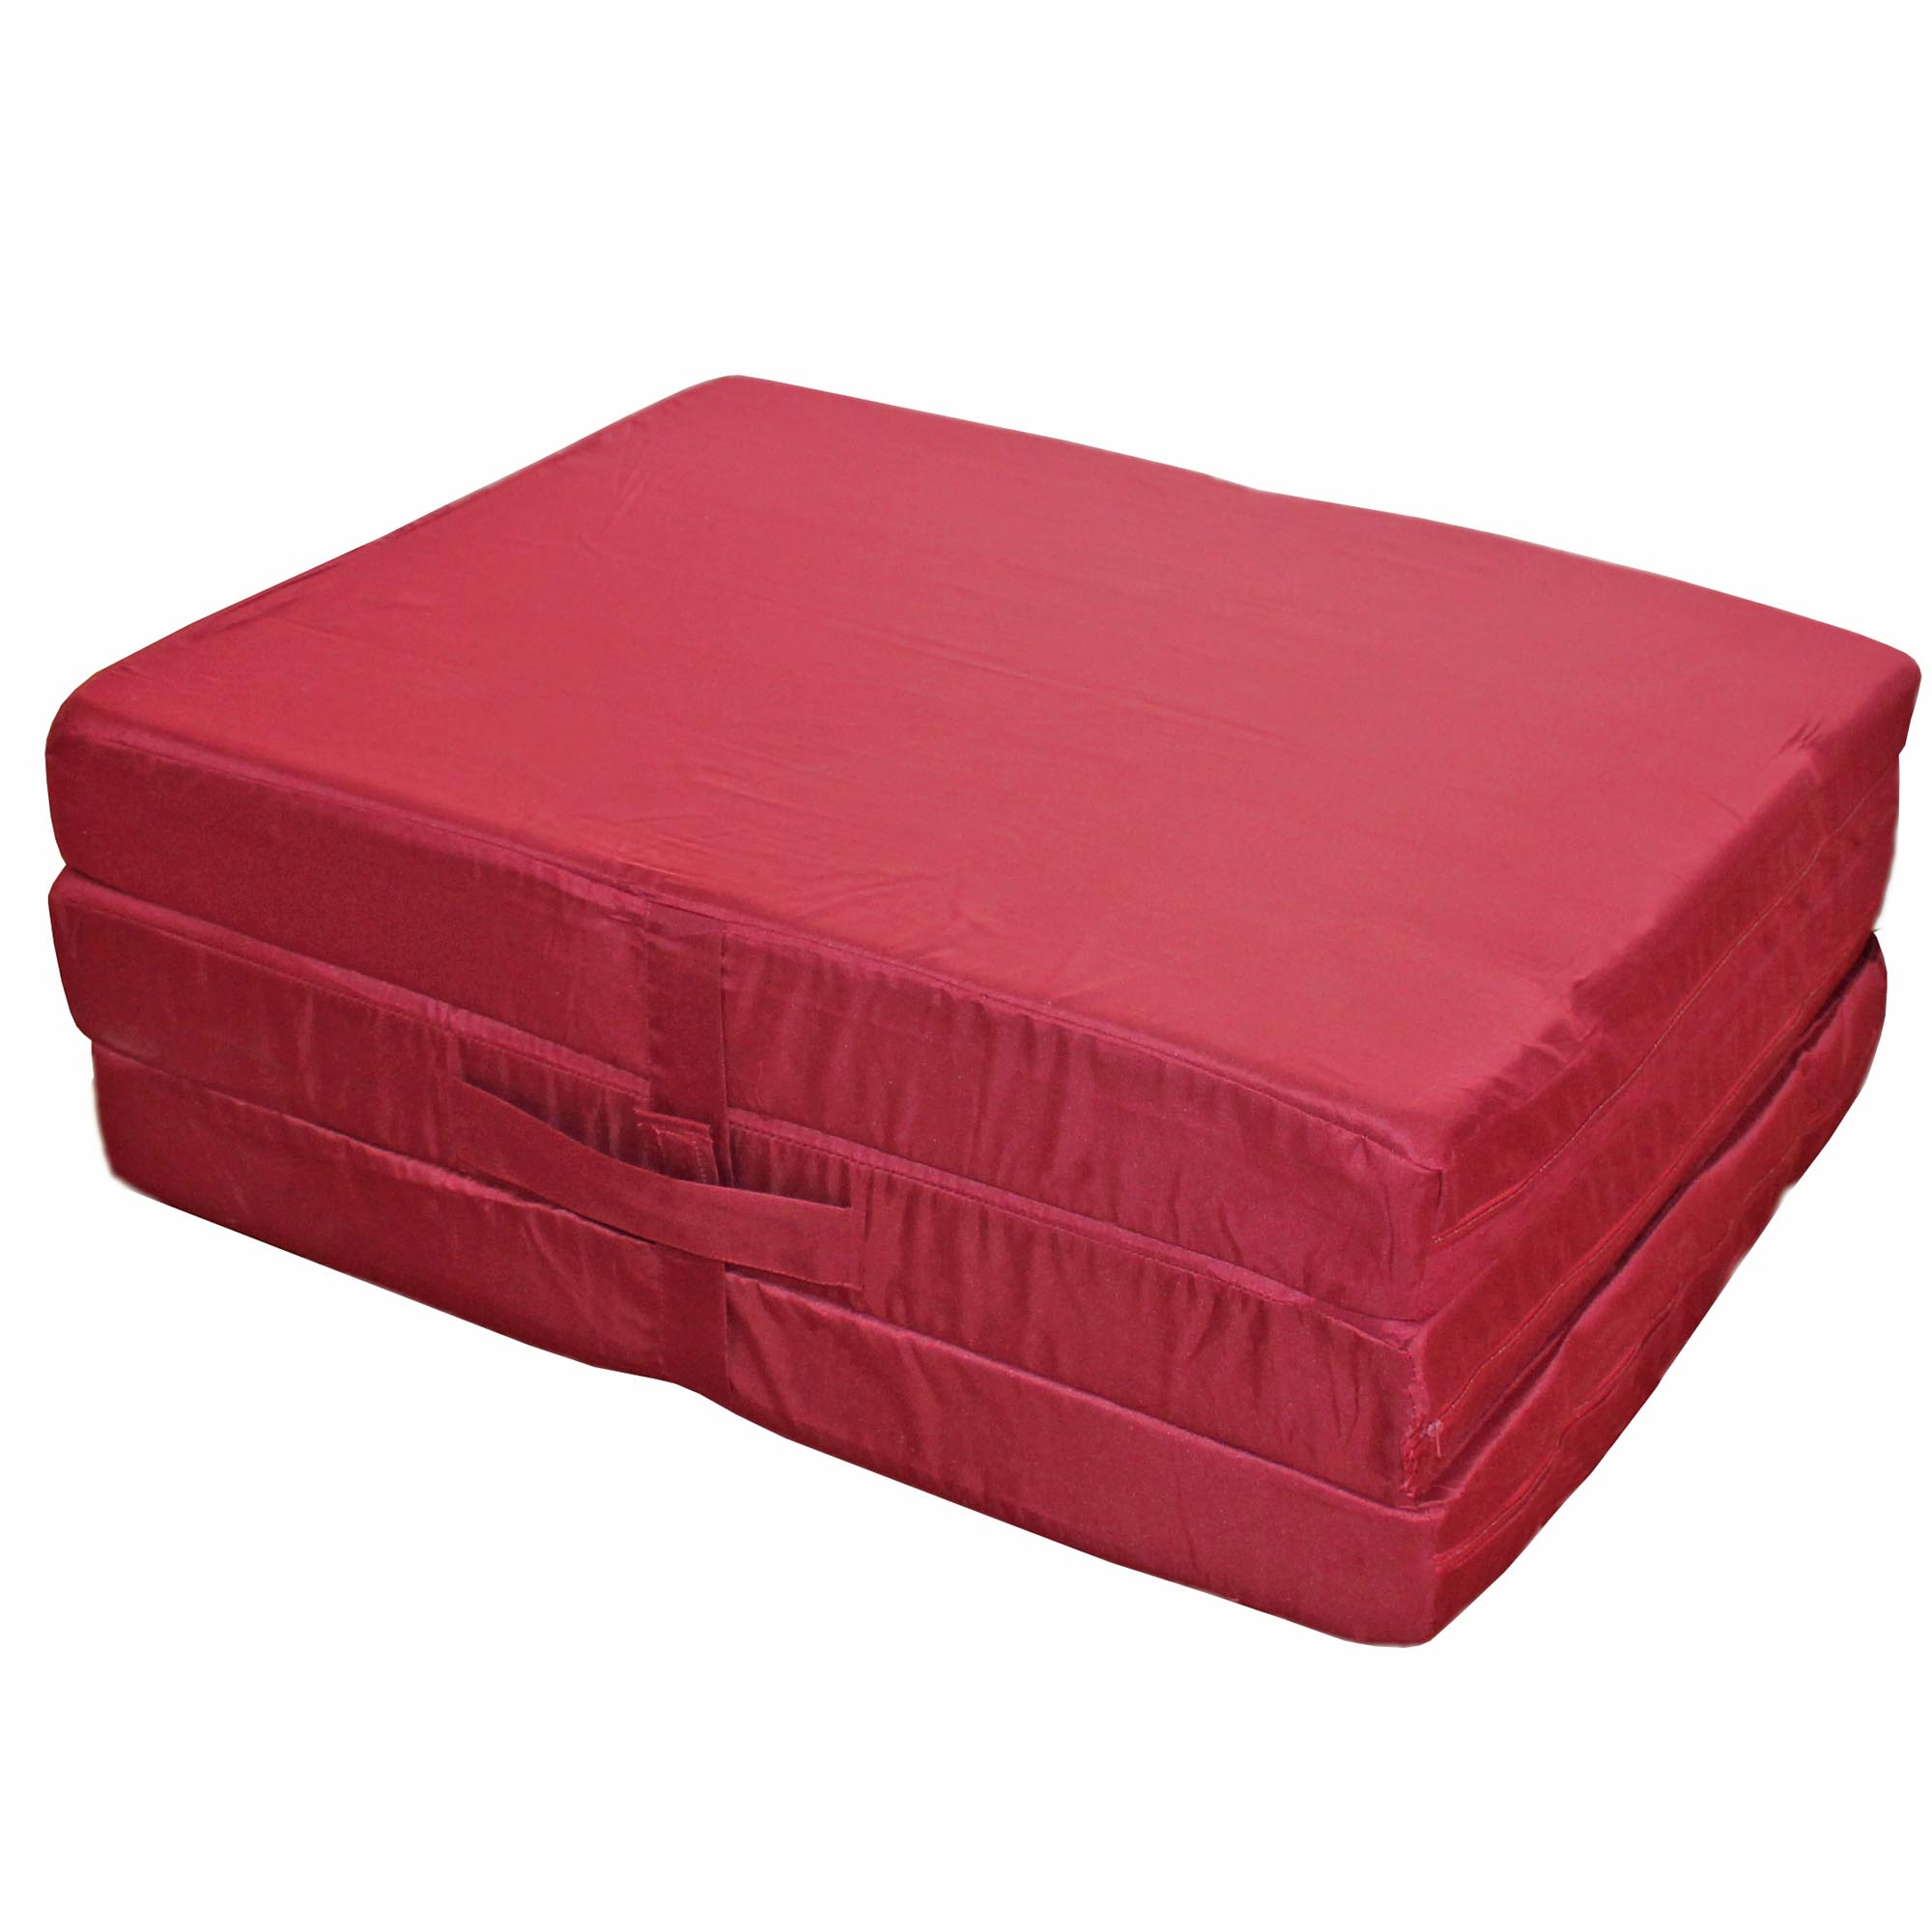 Foldable Mattress Folding Mattress Guest Mattress Spare Bed 195x80x10cm Ebay